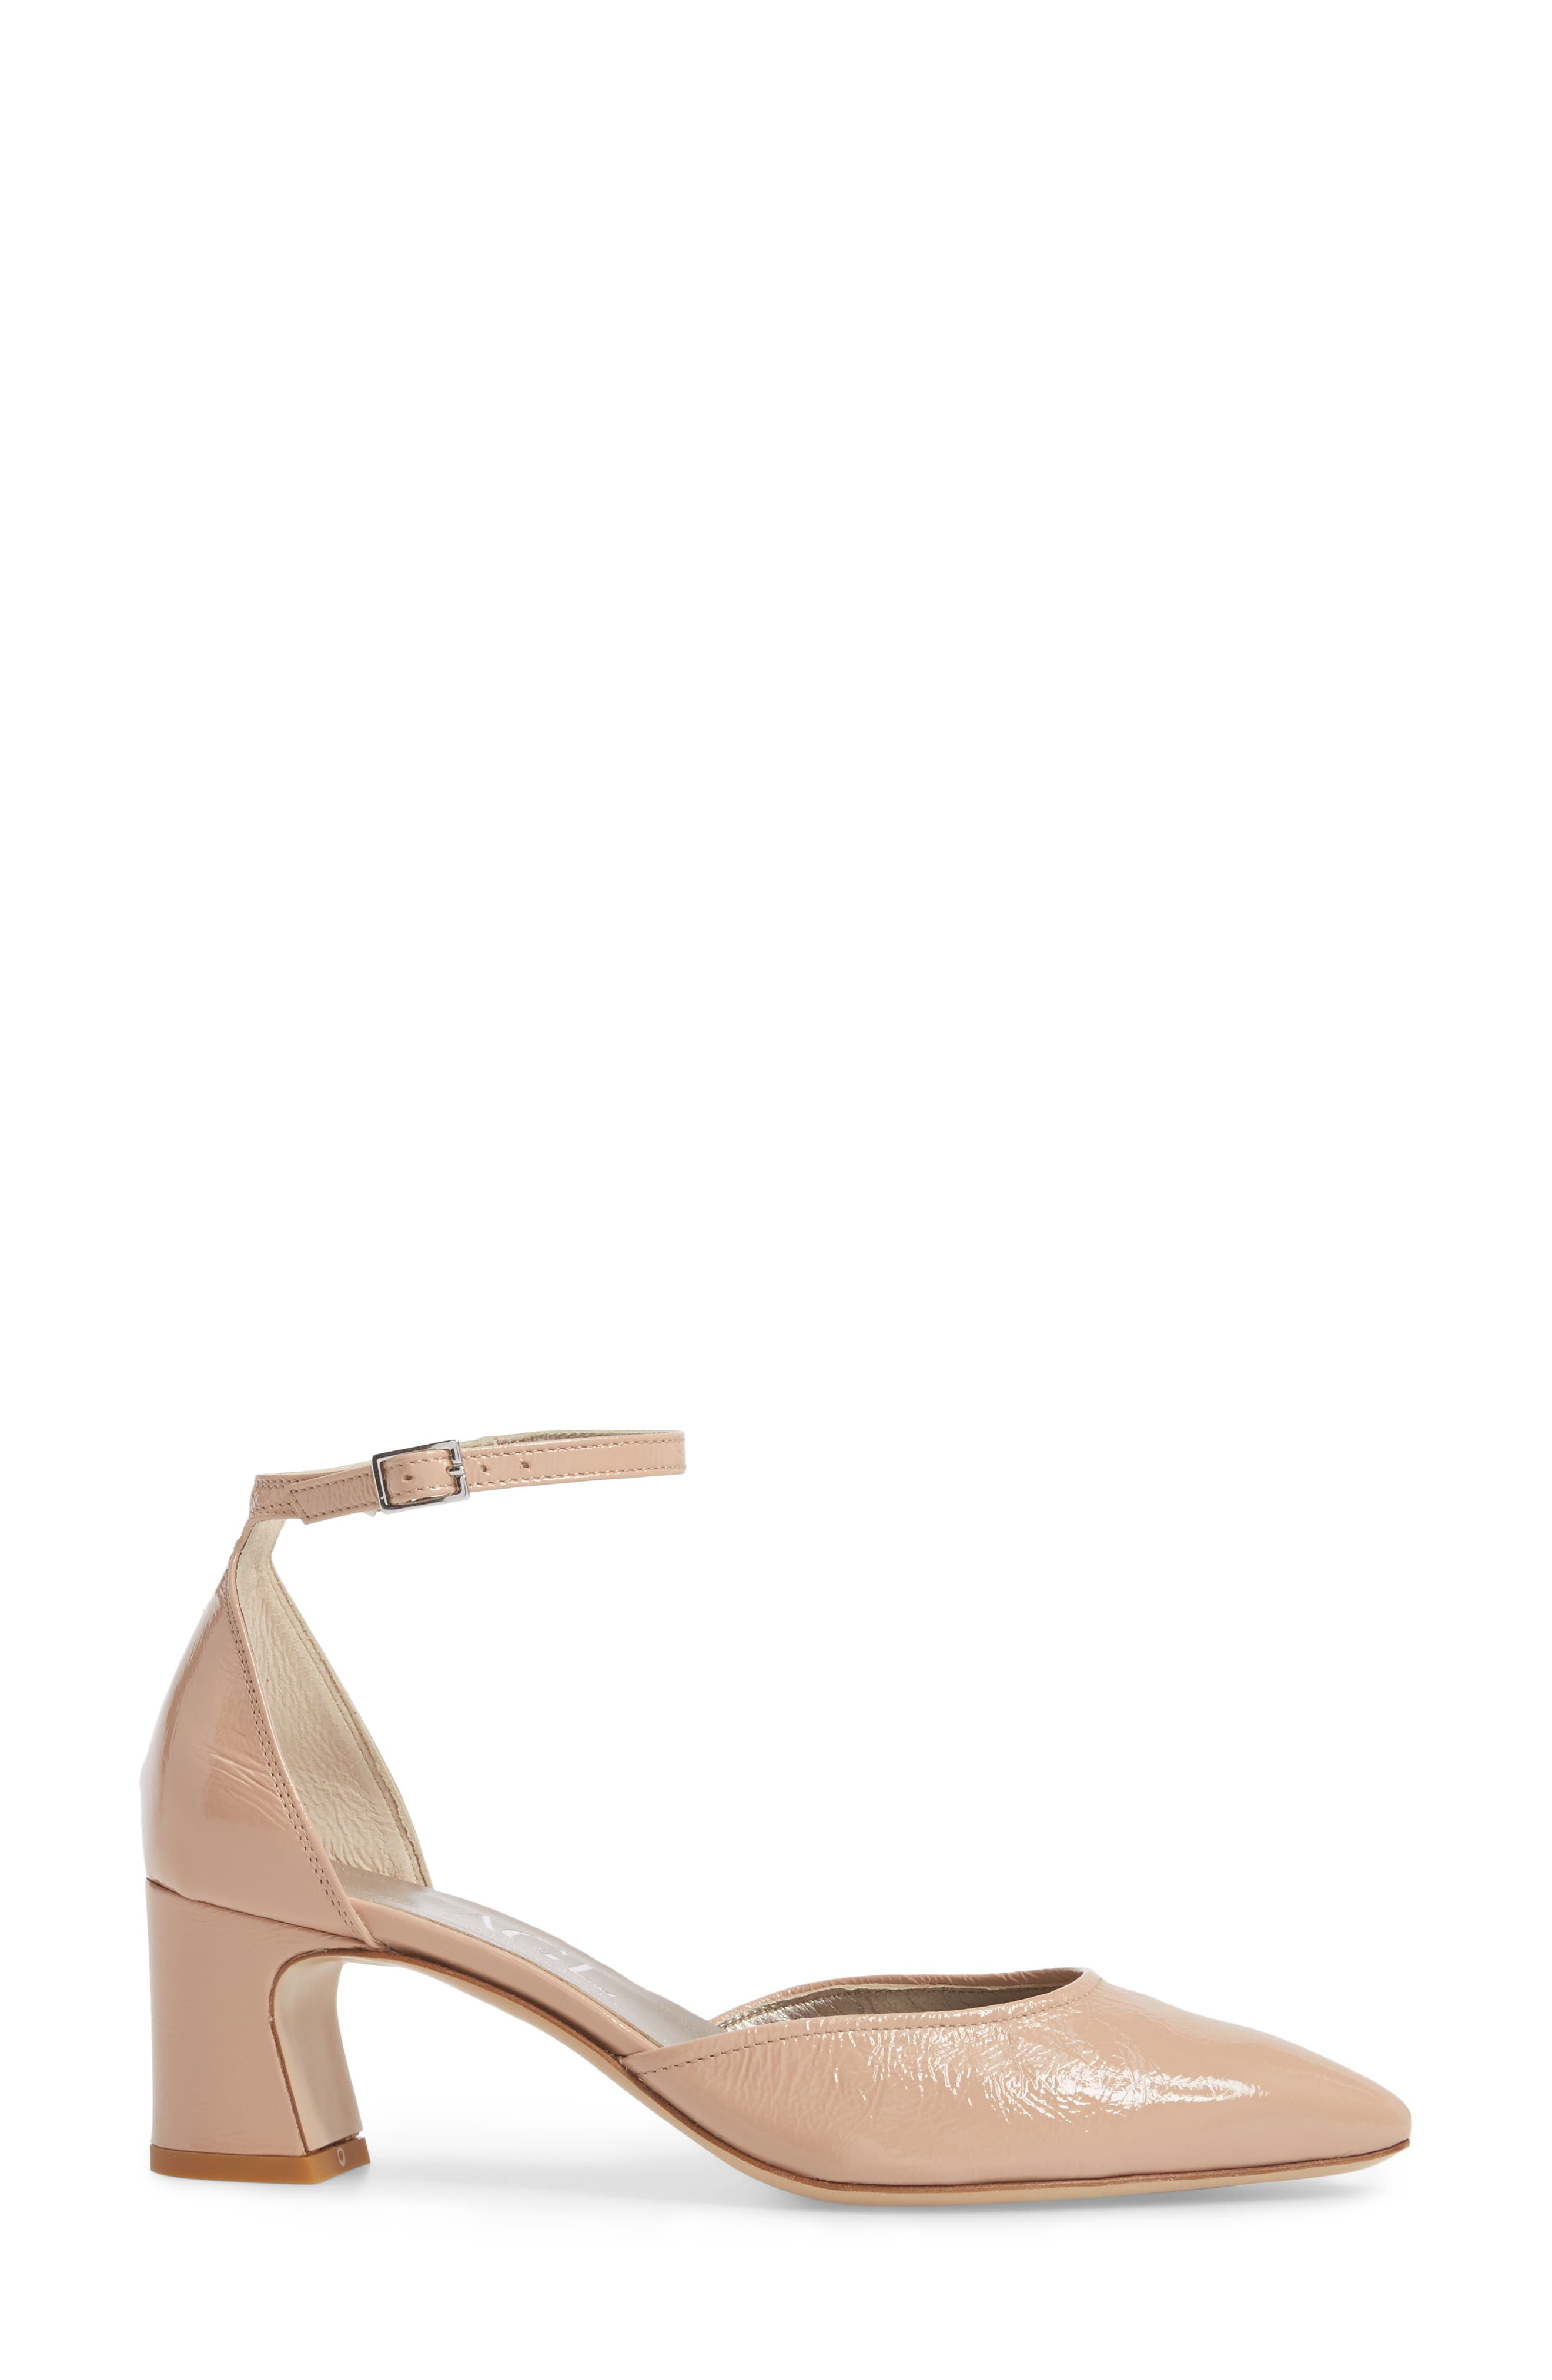 d'Orsay Ankle Strap Pump,                             Alternate thumbnail 3, color,                             Nude Glammy Leather